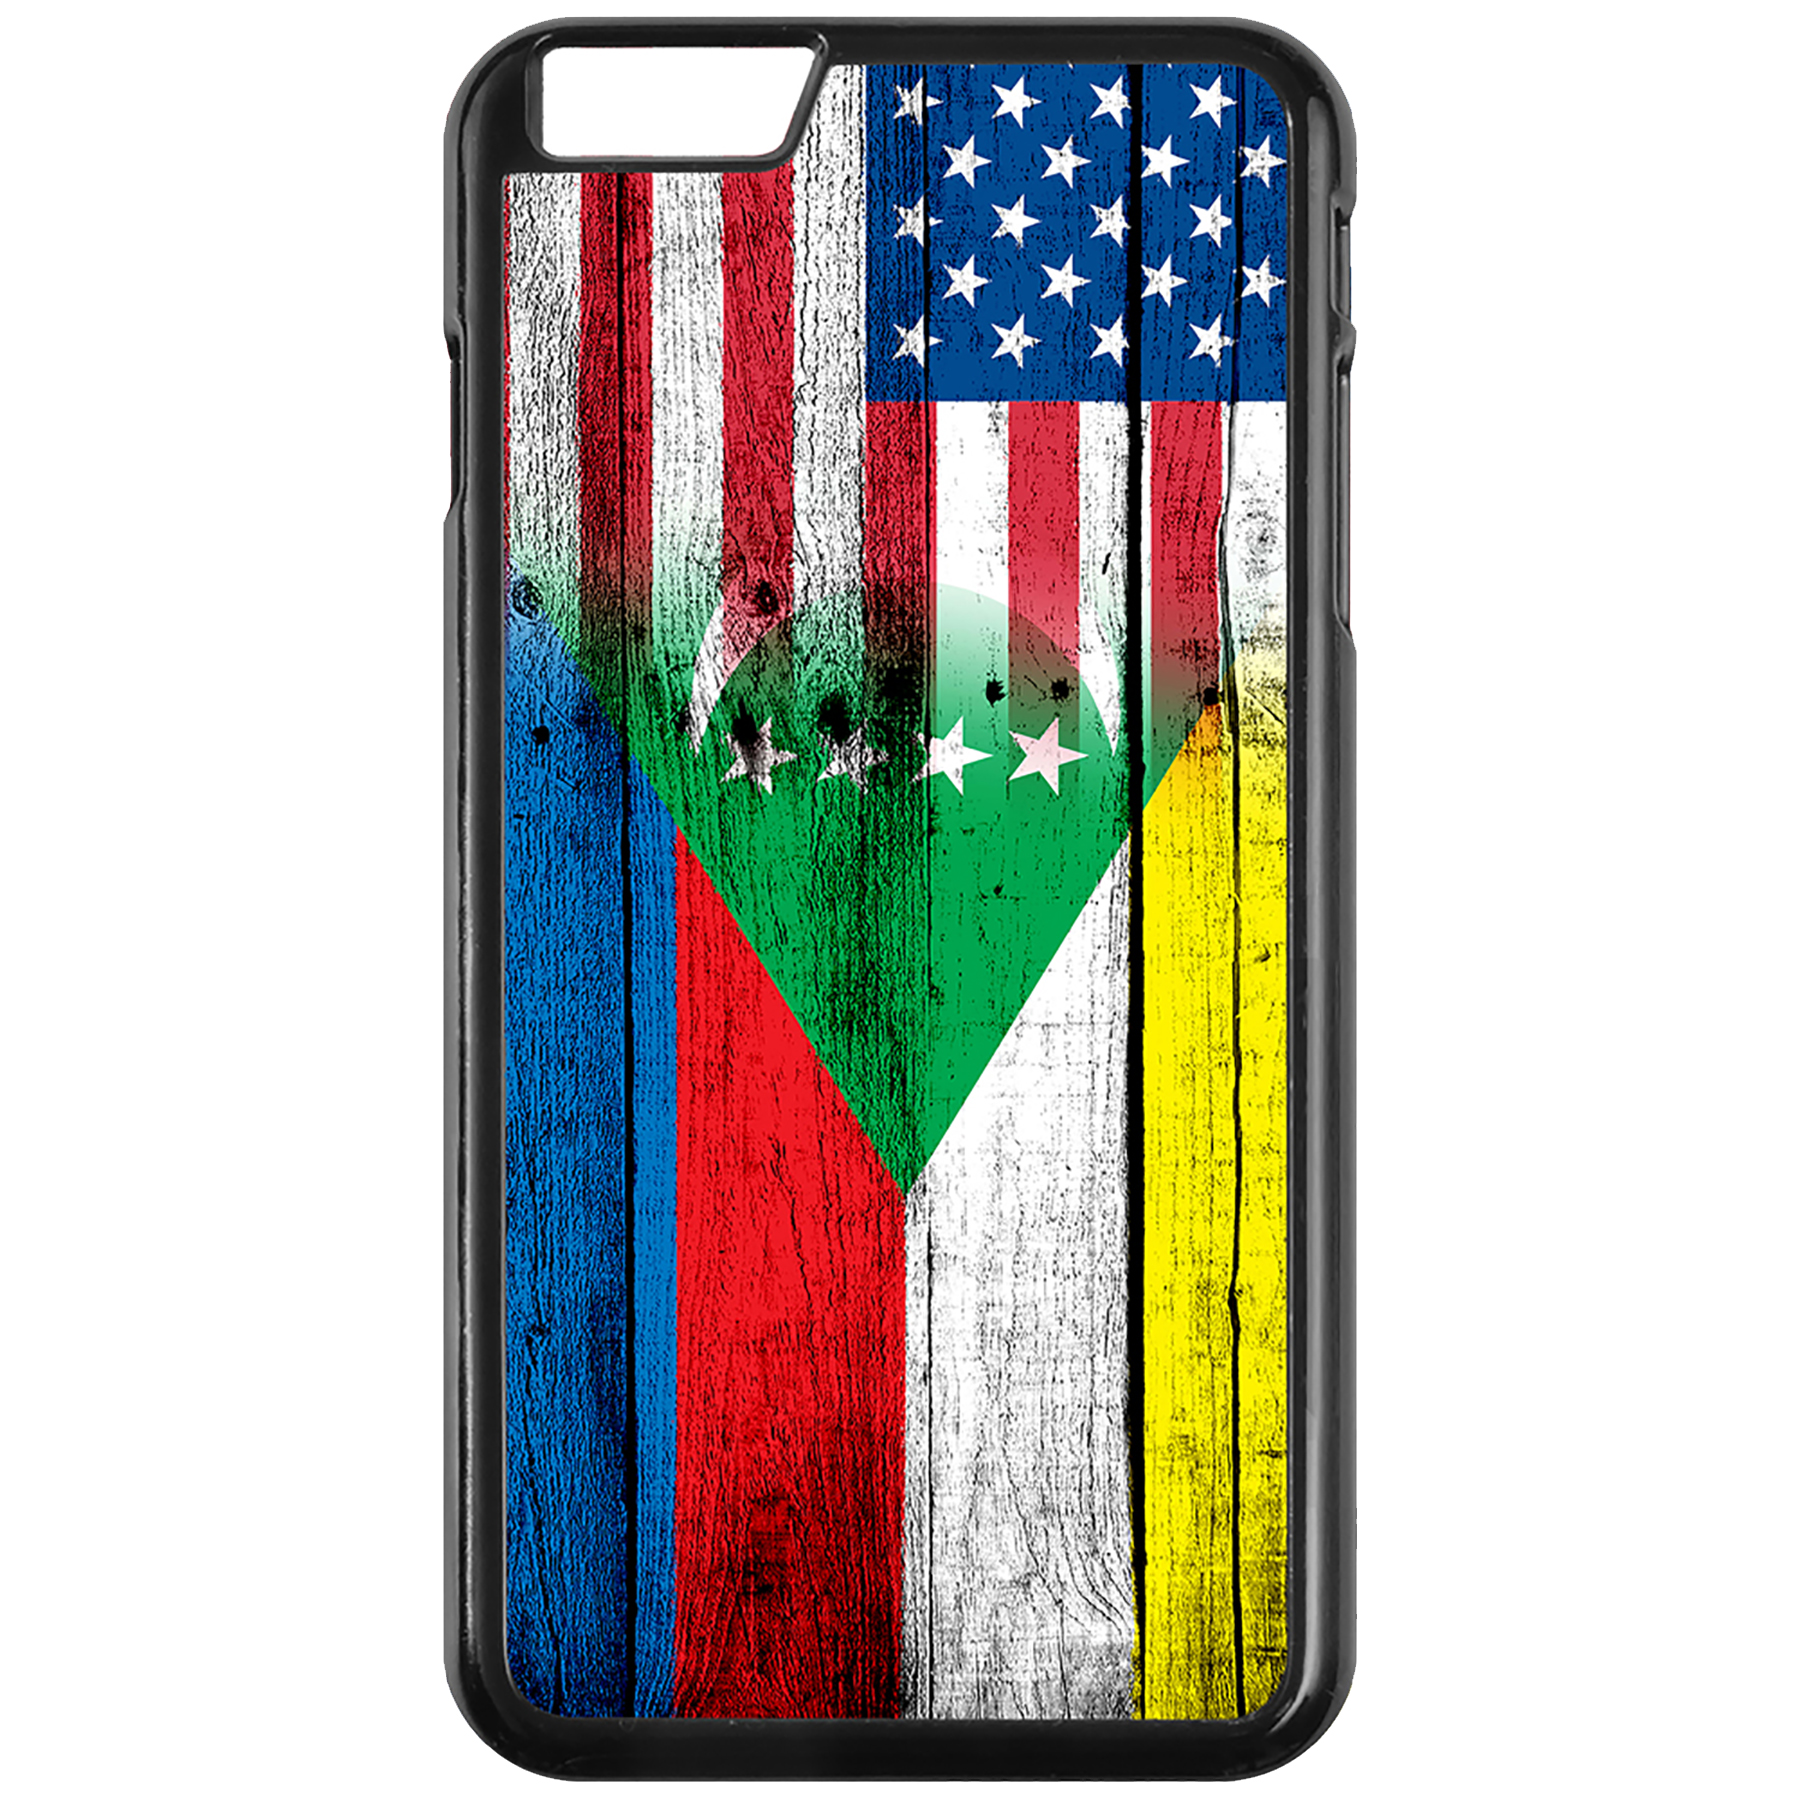 Apple-iPhone-Case-with-Flag-of-Comoros-Comorian-Many-Design-Options thumbnail 19